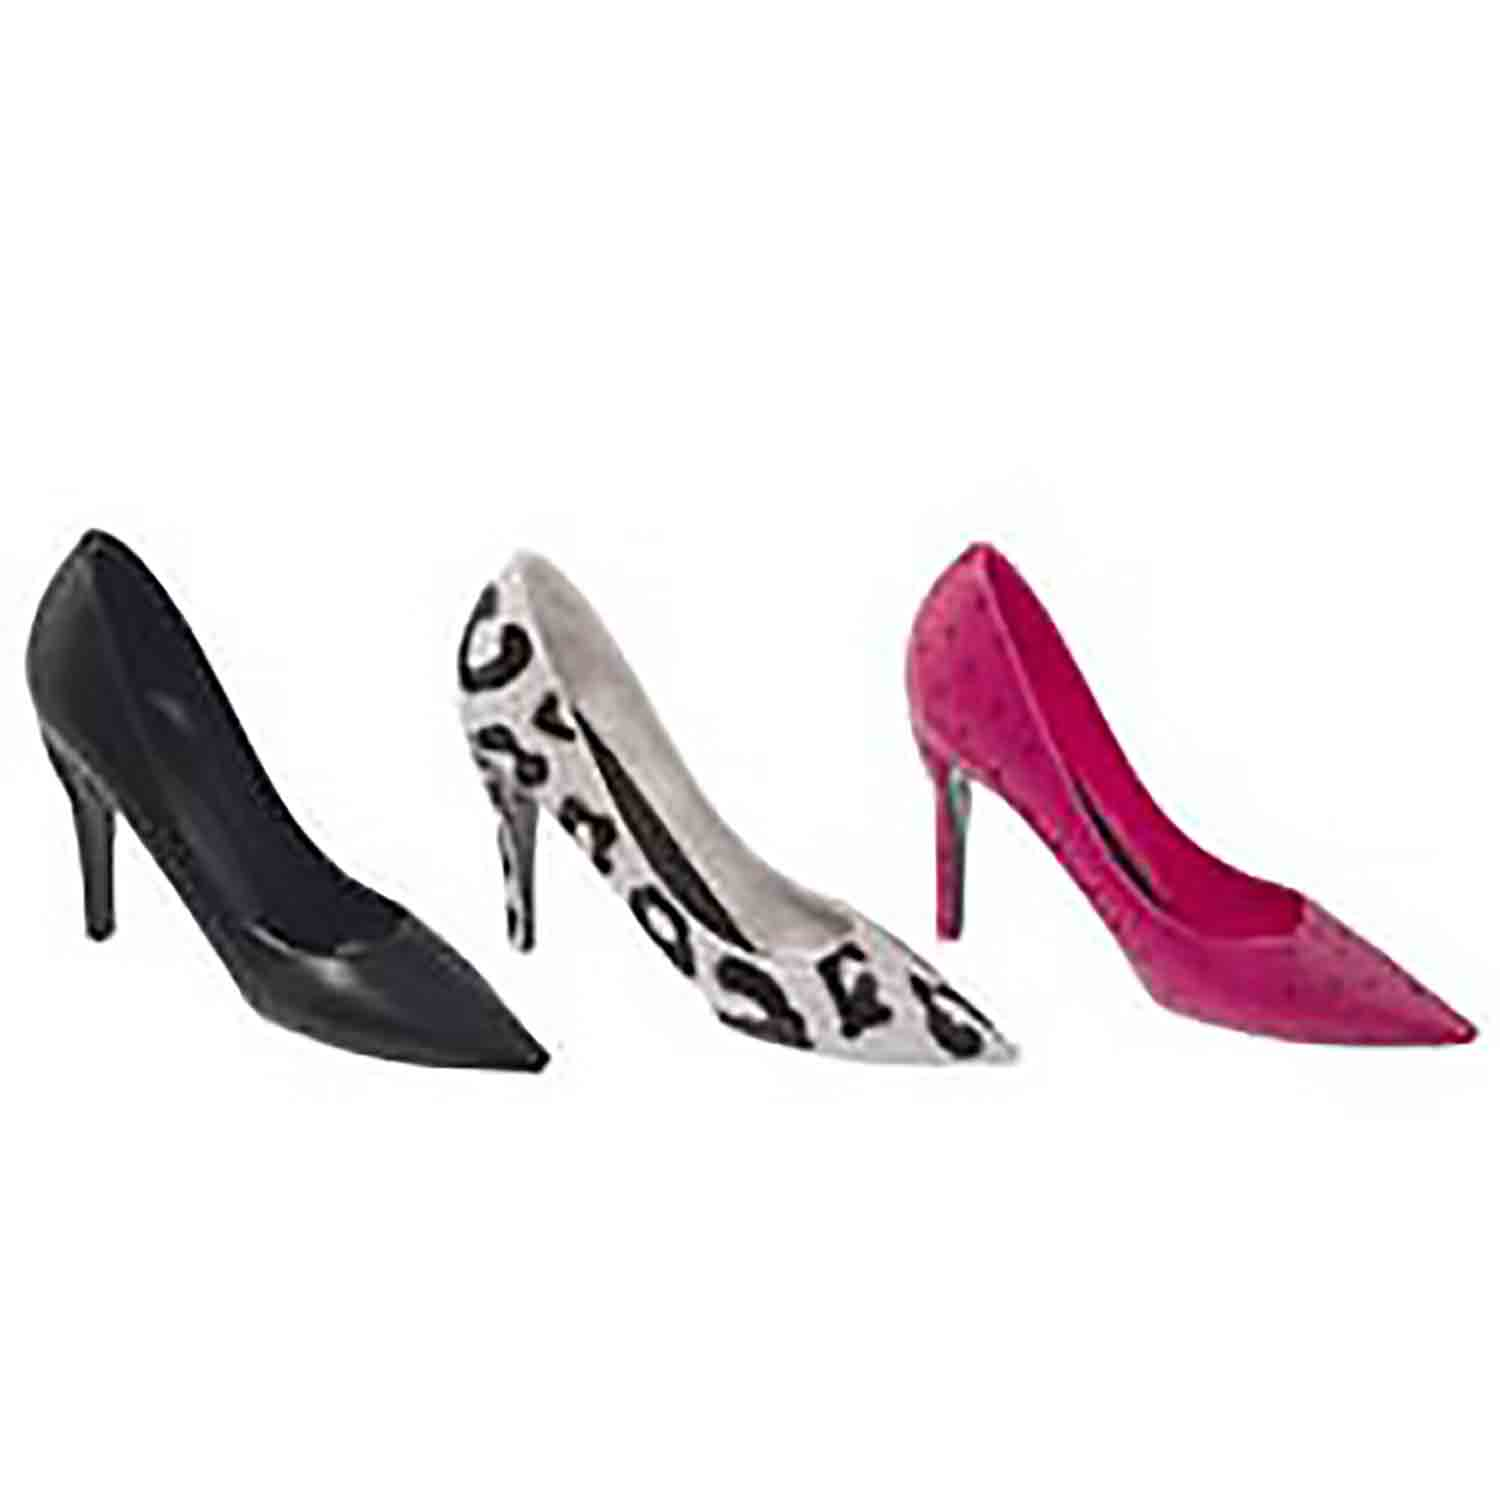 Shoes- Fashion Stiletto Heels